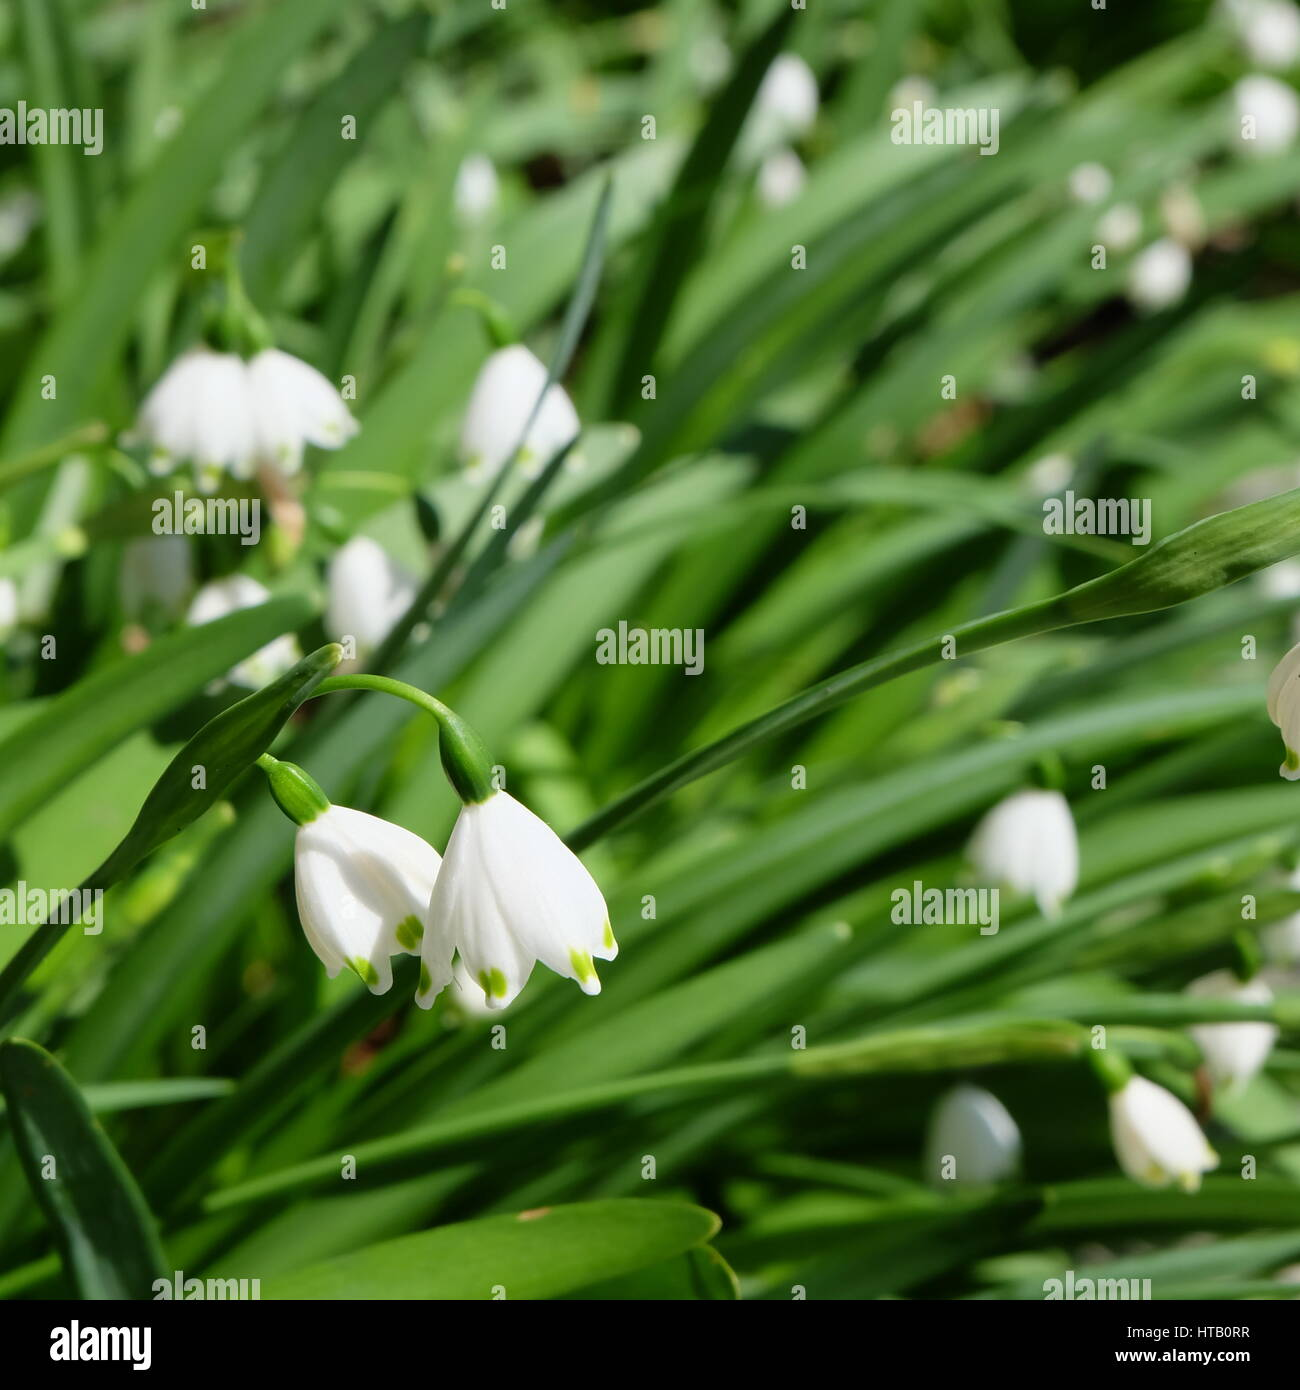 Tiny white dots stock photos tiny white dots stock images alamy leucojum small white bell shaped flower with green dot on tip of petal stock dhlflorist Image collections